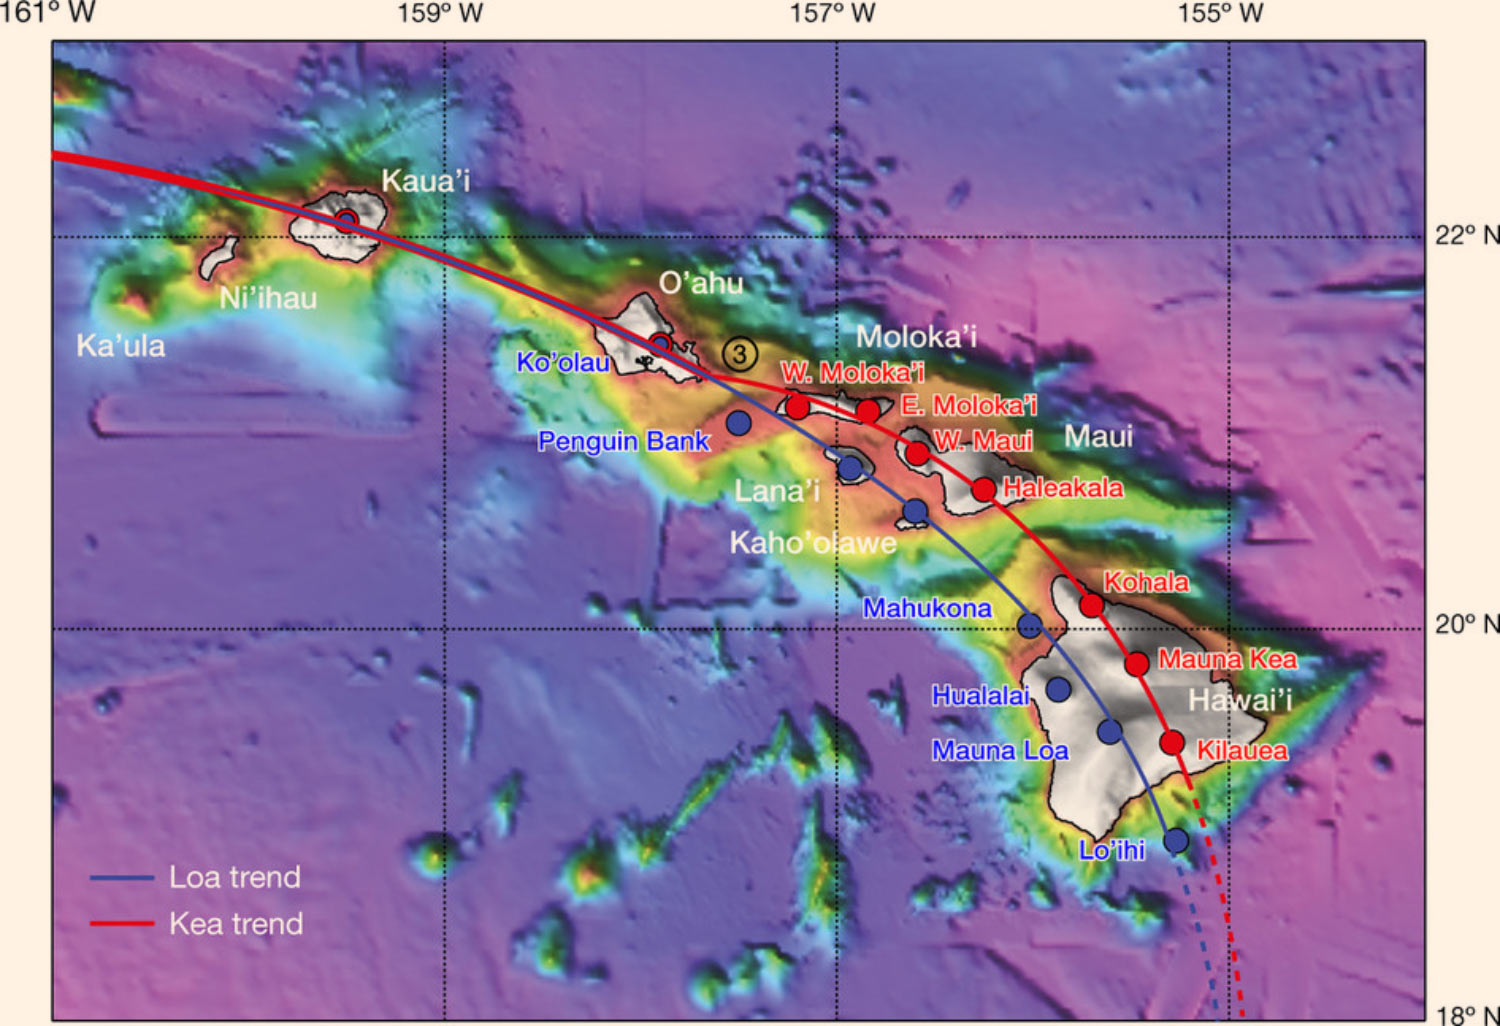 Geoscientists finally solve mystery of hawaiian volcanoes bathymetric map of recent hawaiian volcanism highlighting the loa and kea tracks solid lines gumiabroncs Images